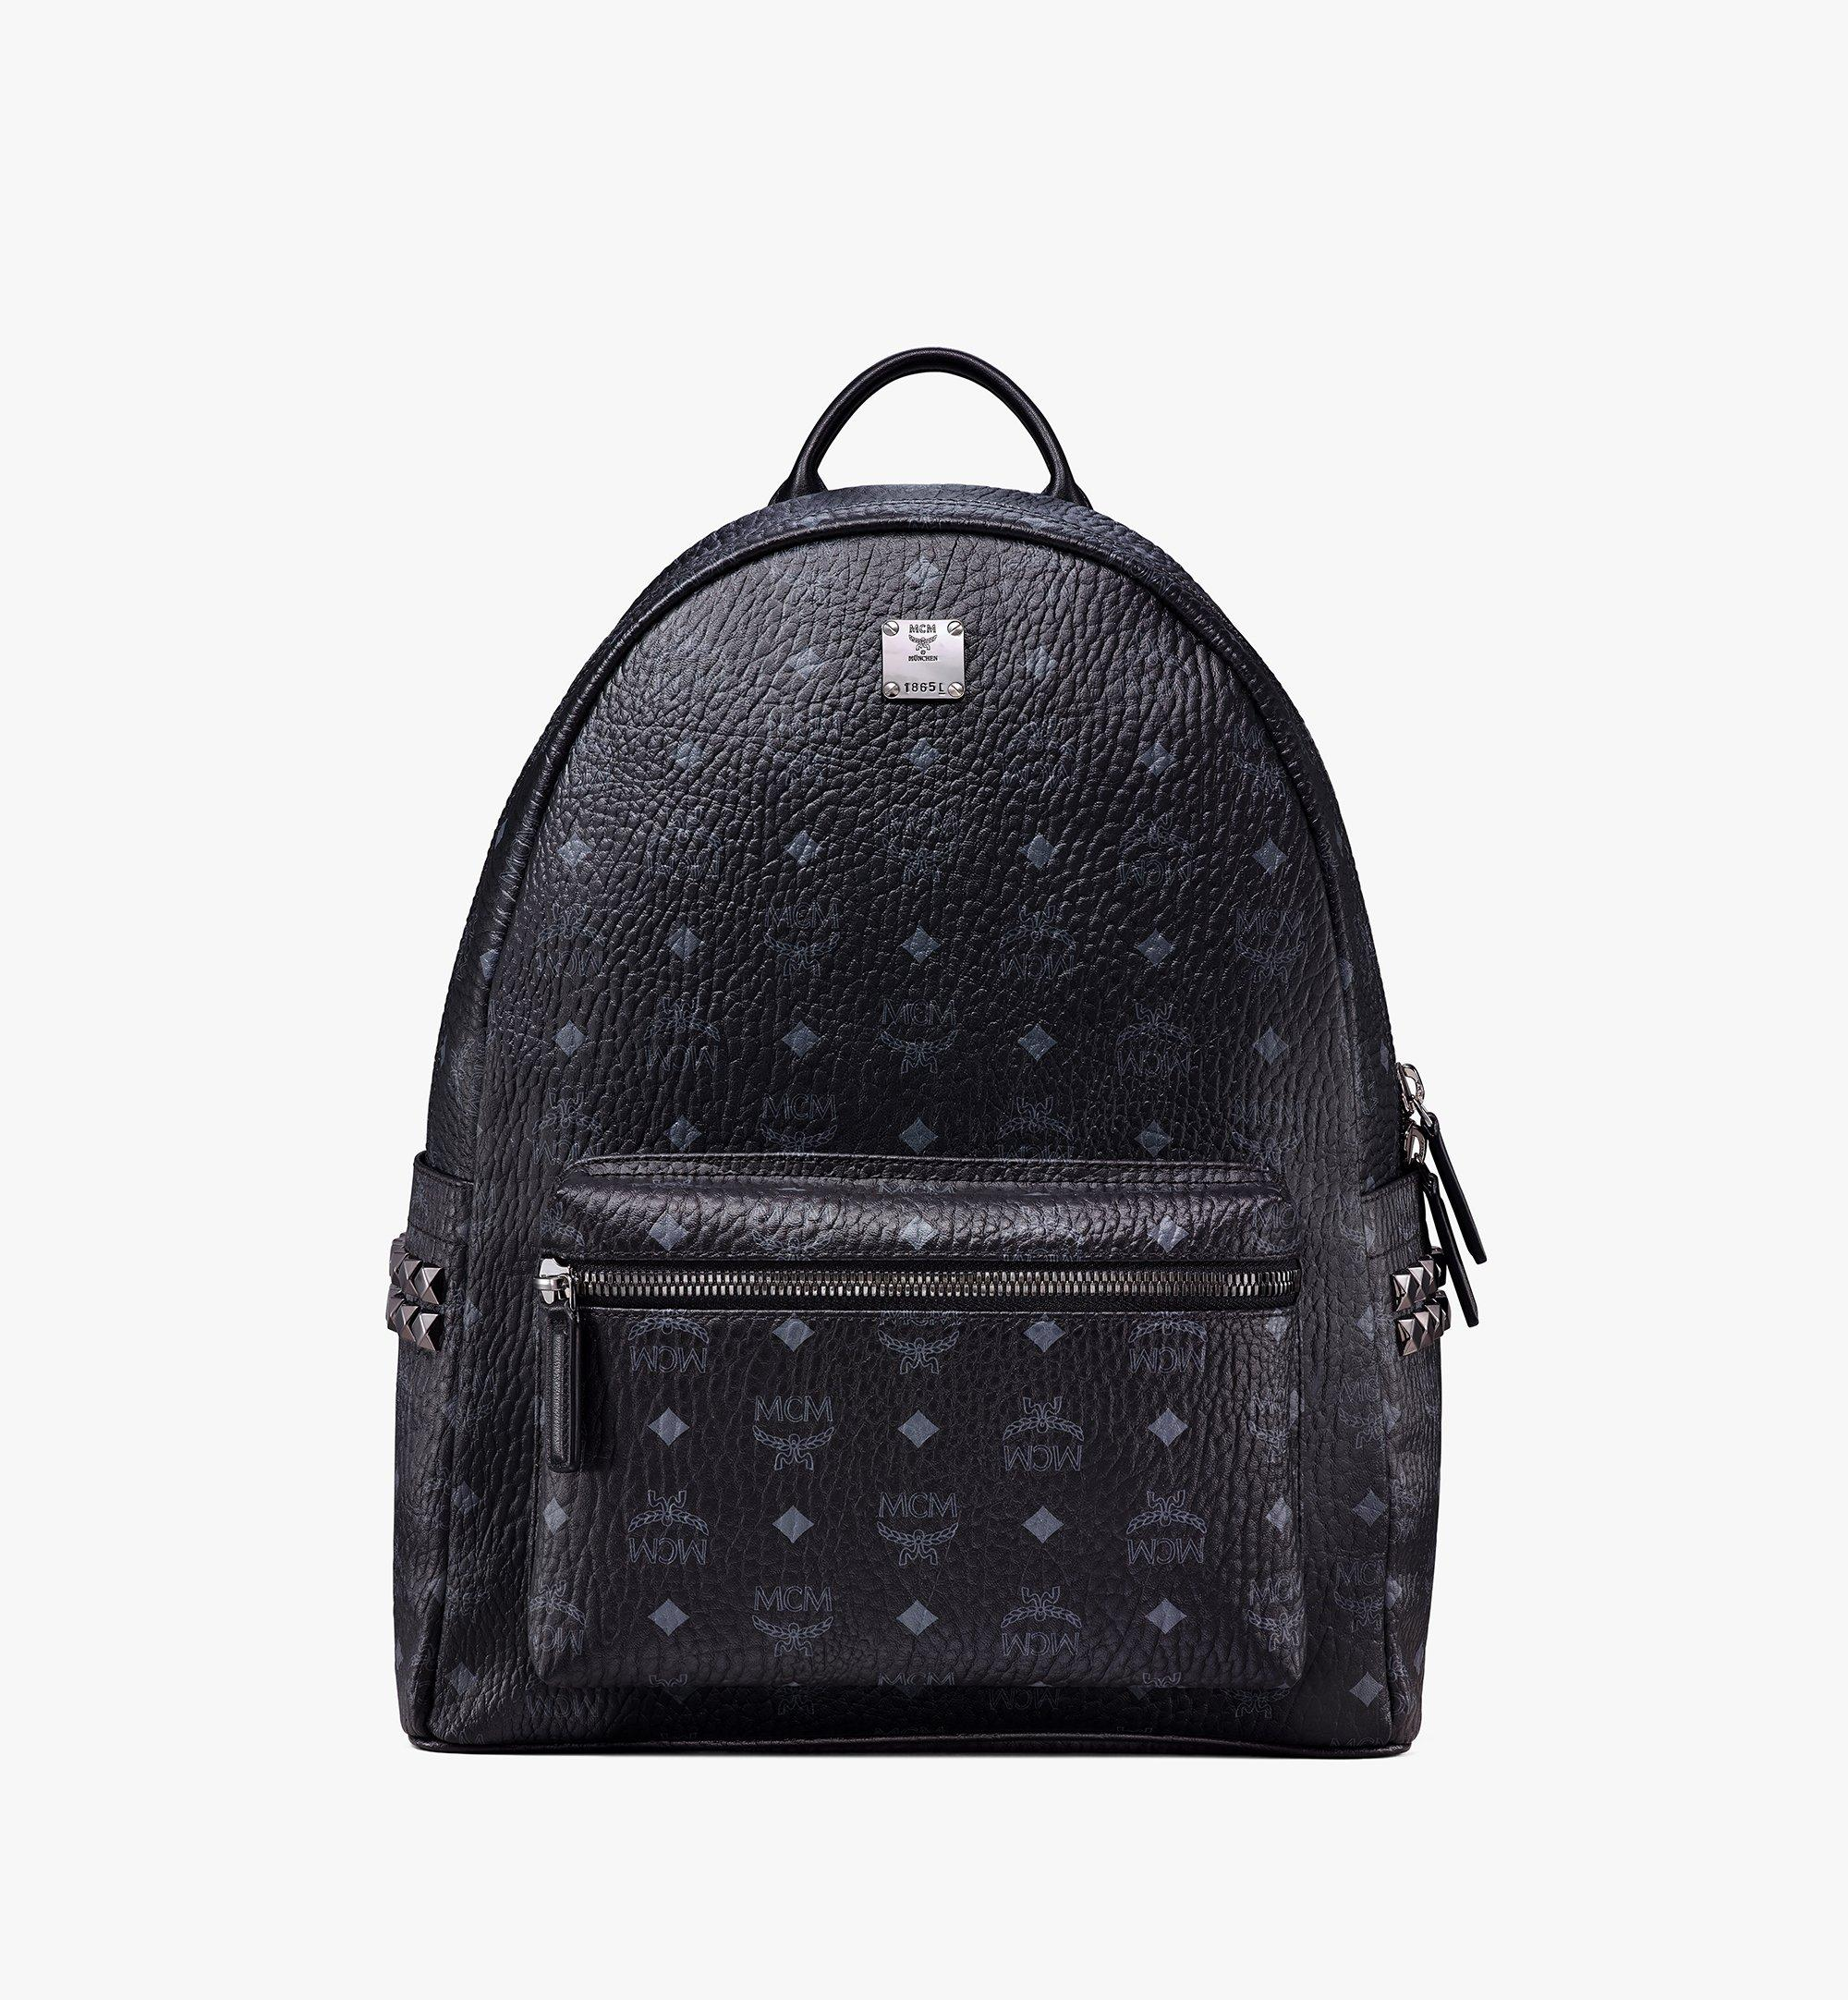 MCM Stark Side Studs Backpack in Visetos Black MMK6SVE38BK001 Alternate View 1